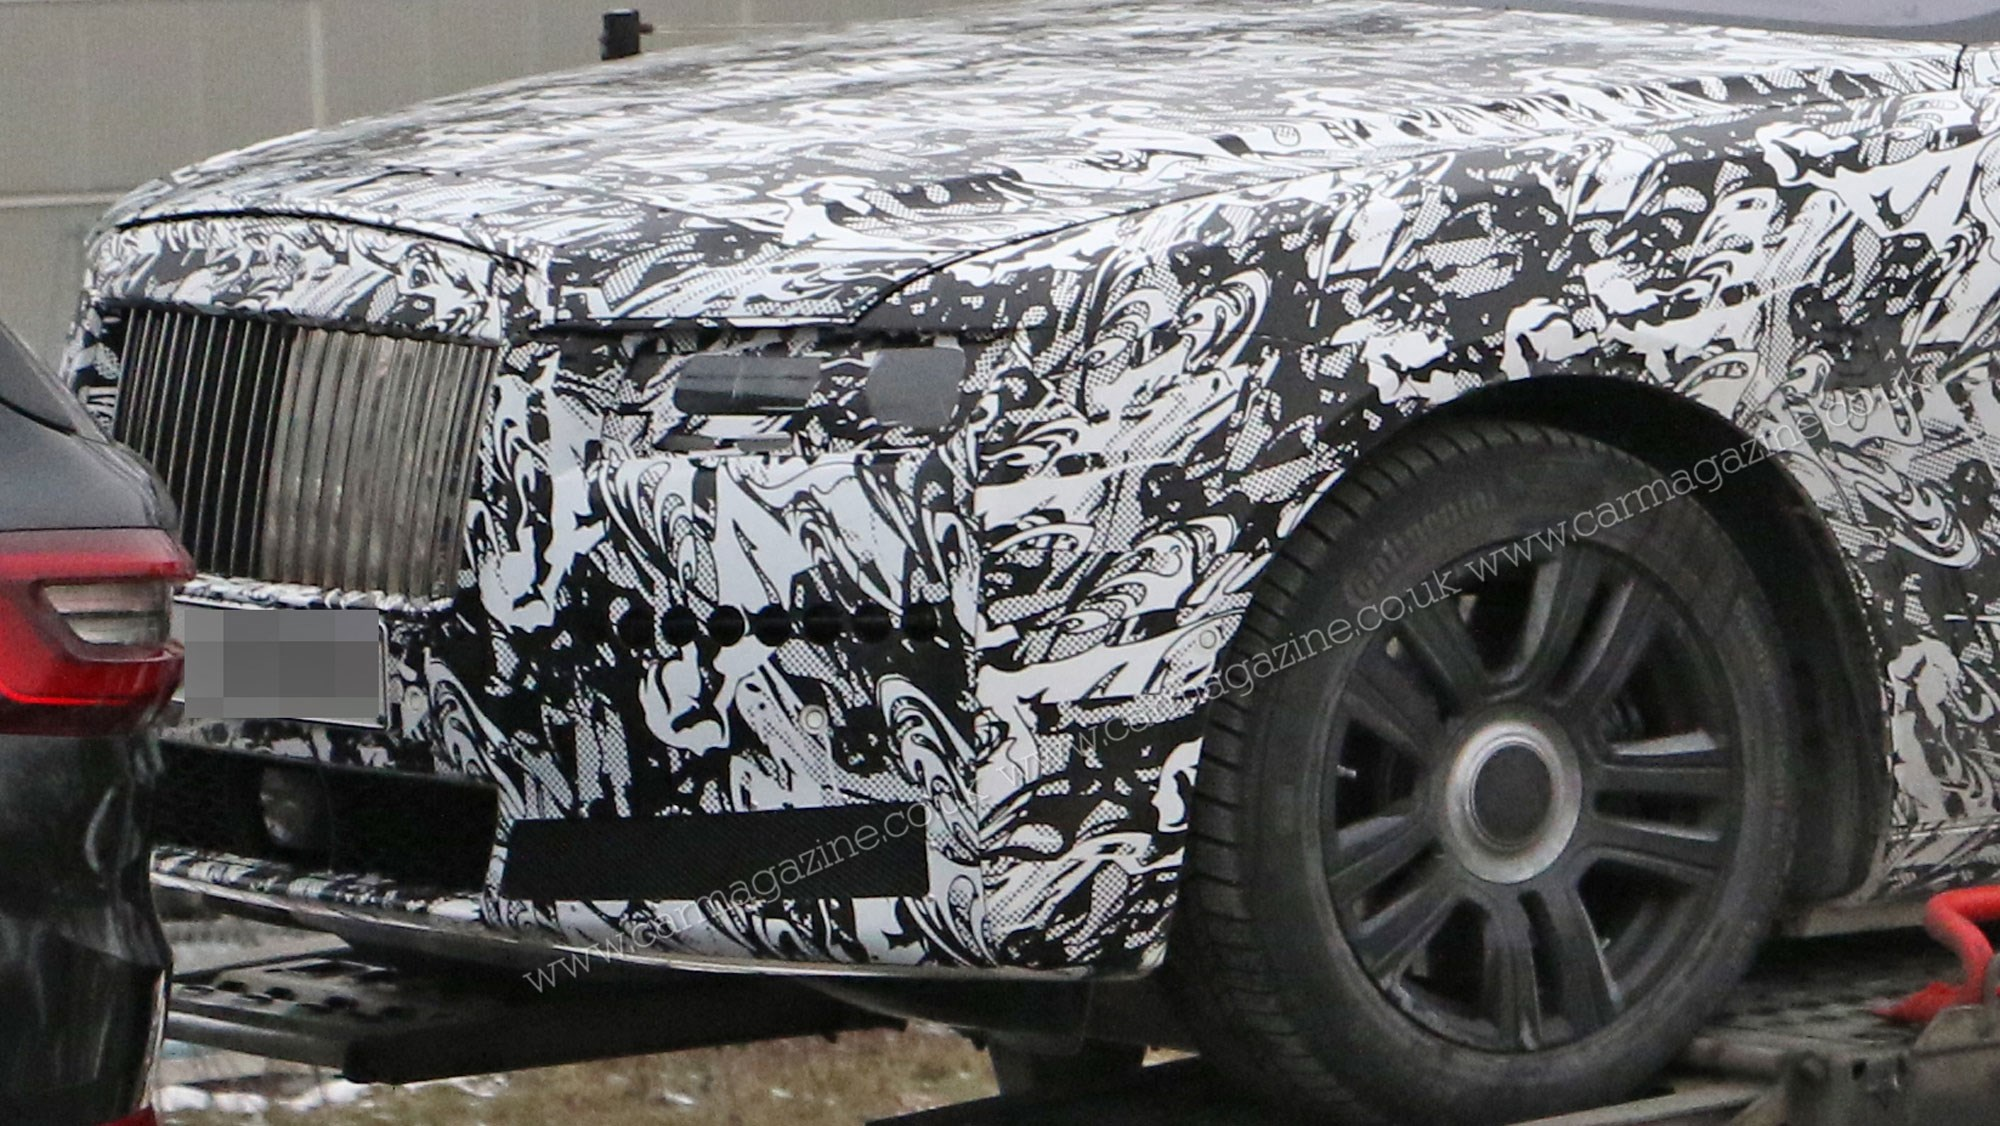 New Rolls Royce Ghost 2021 Car Spotted Trailer Parking